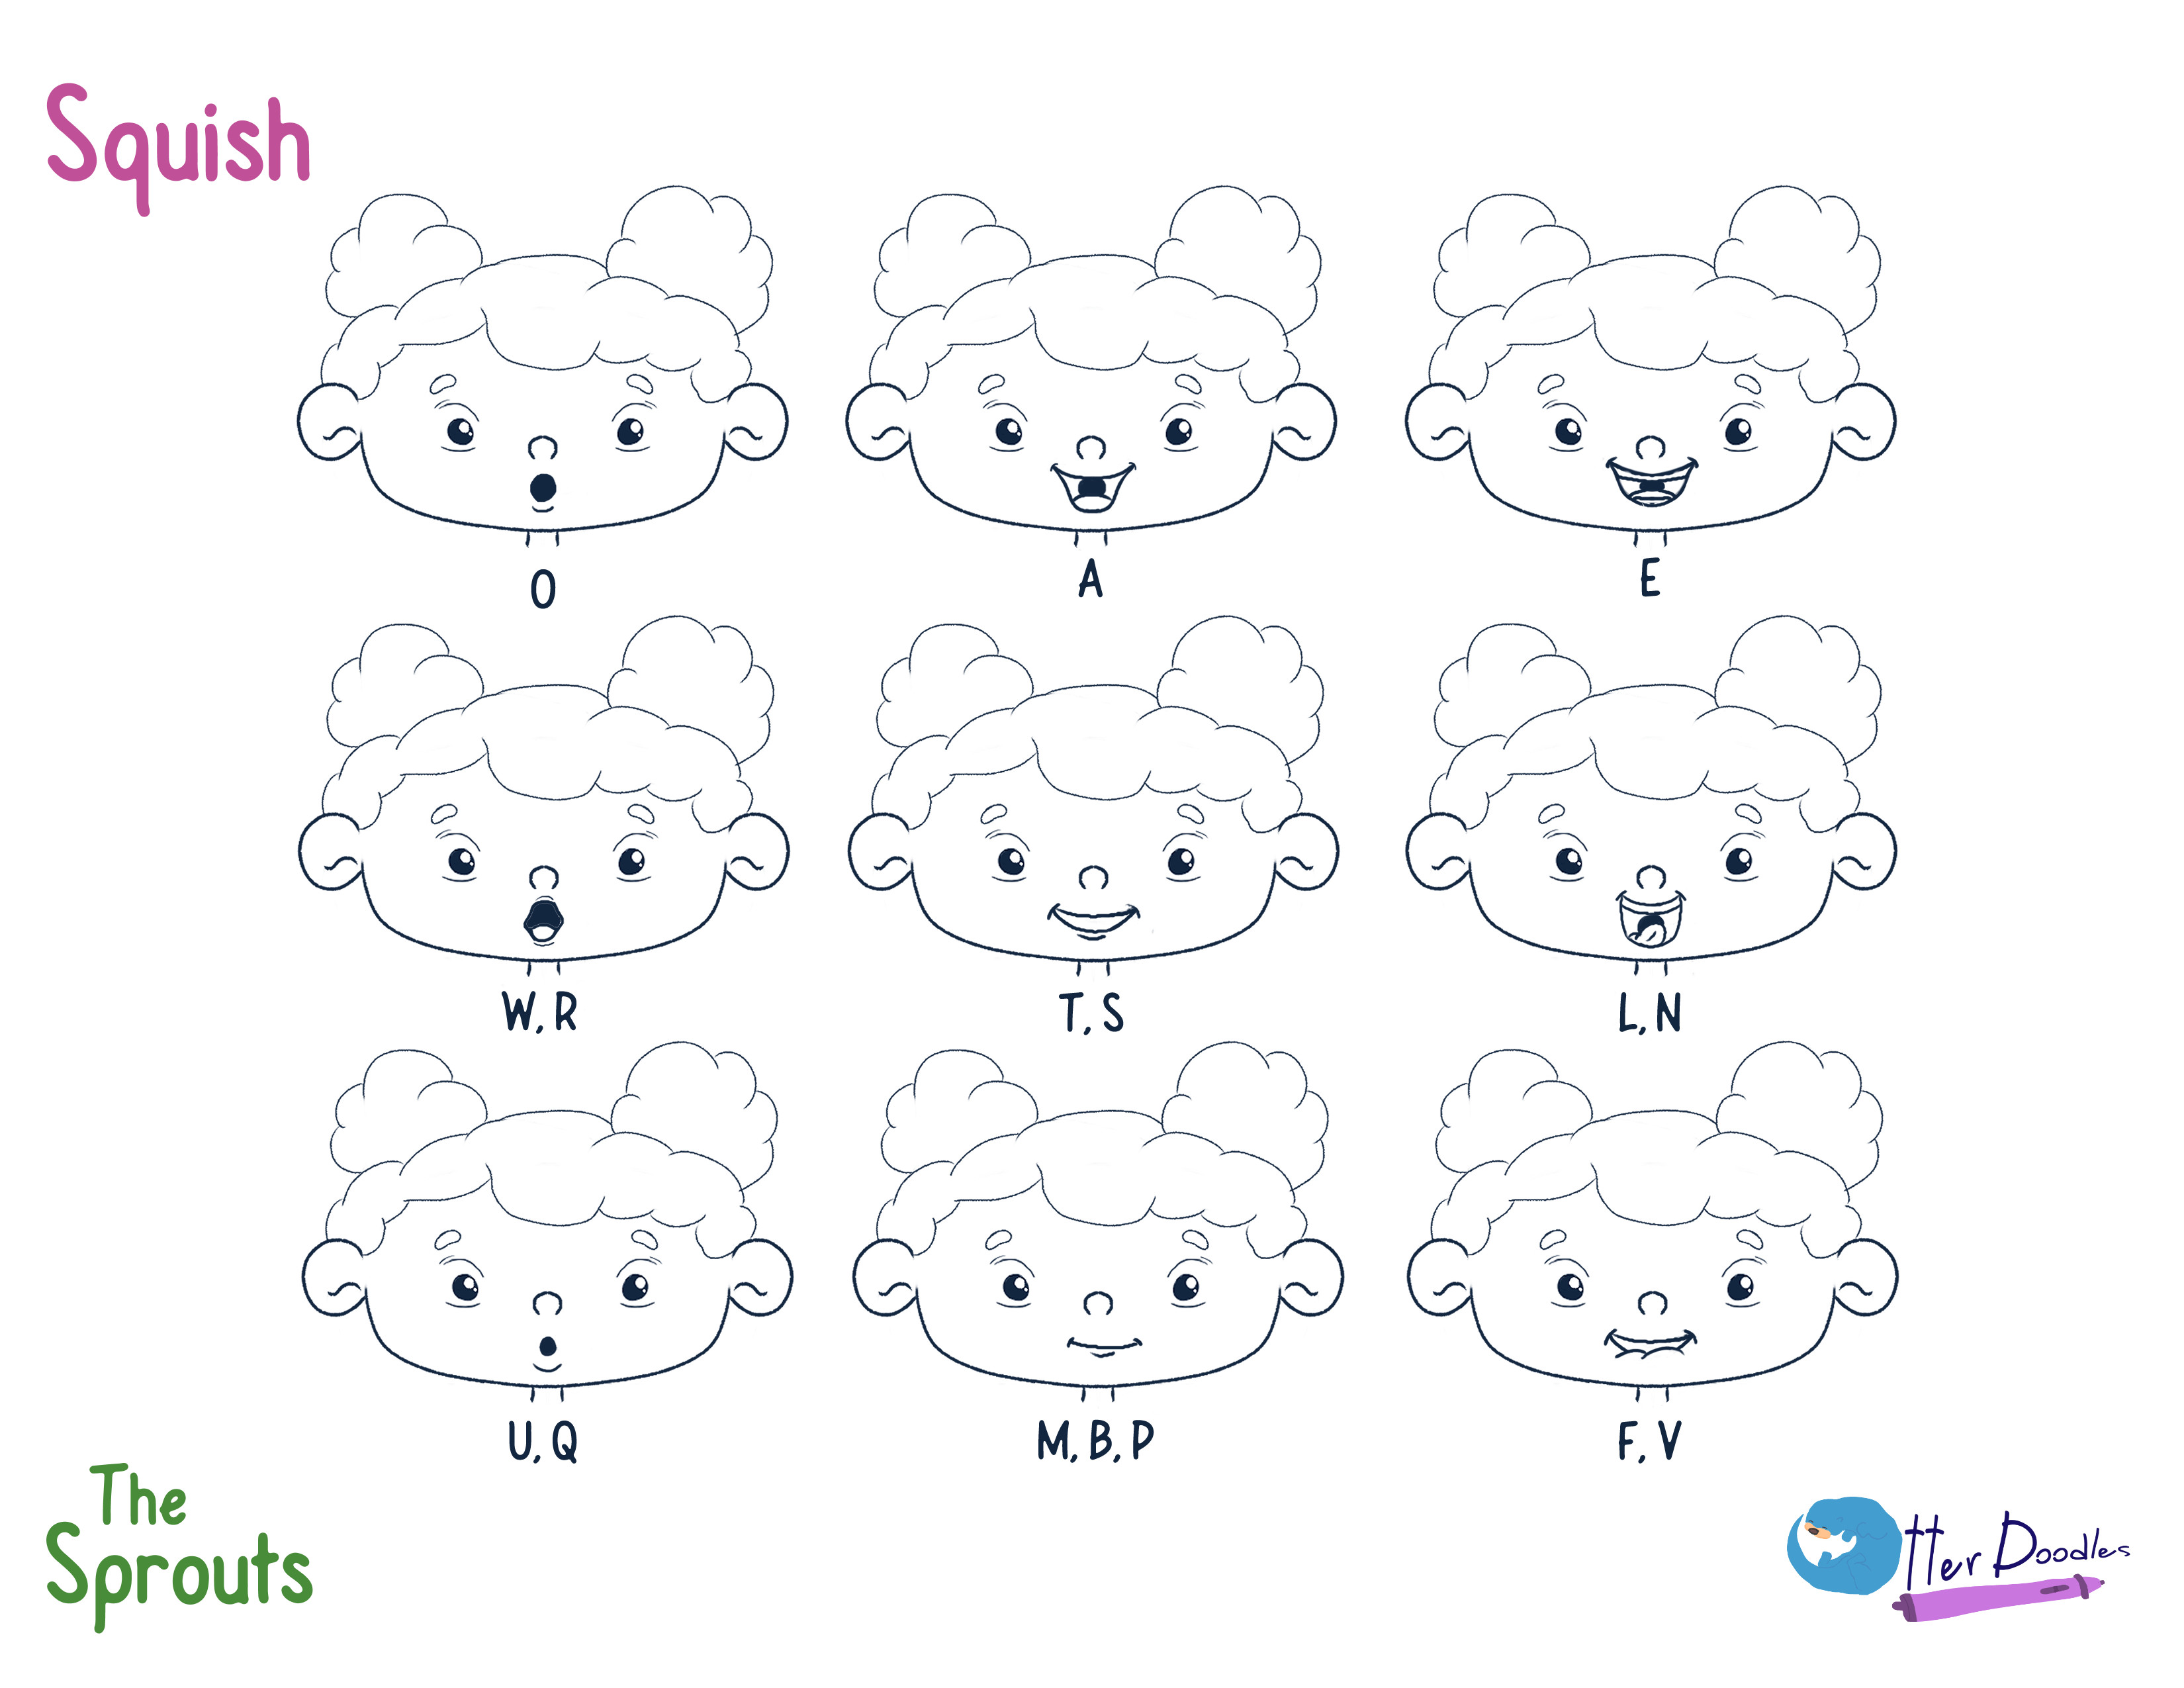 The Sprouts: Squish Phoneme Model Sheet